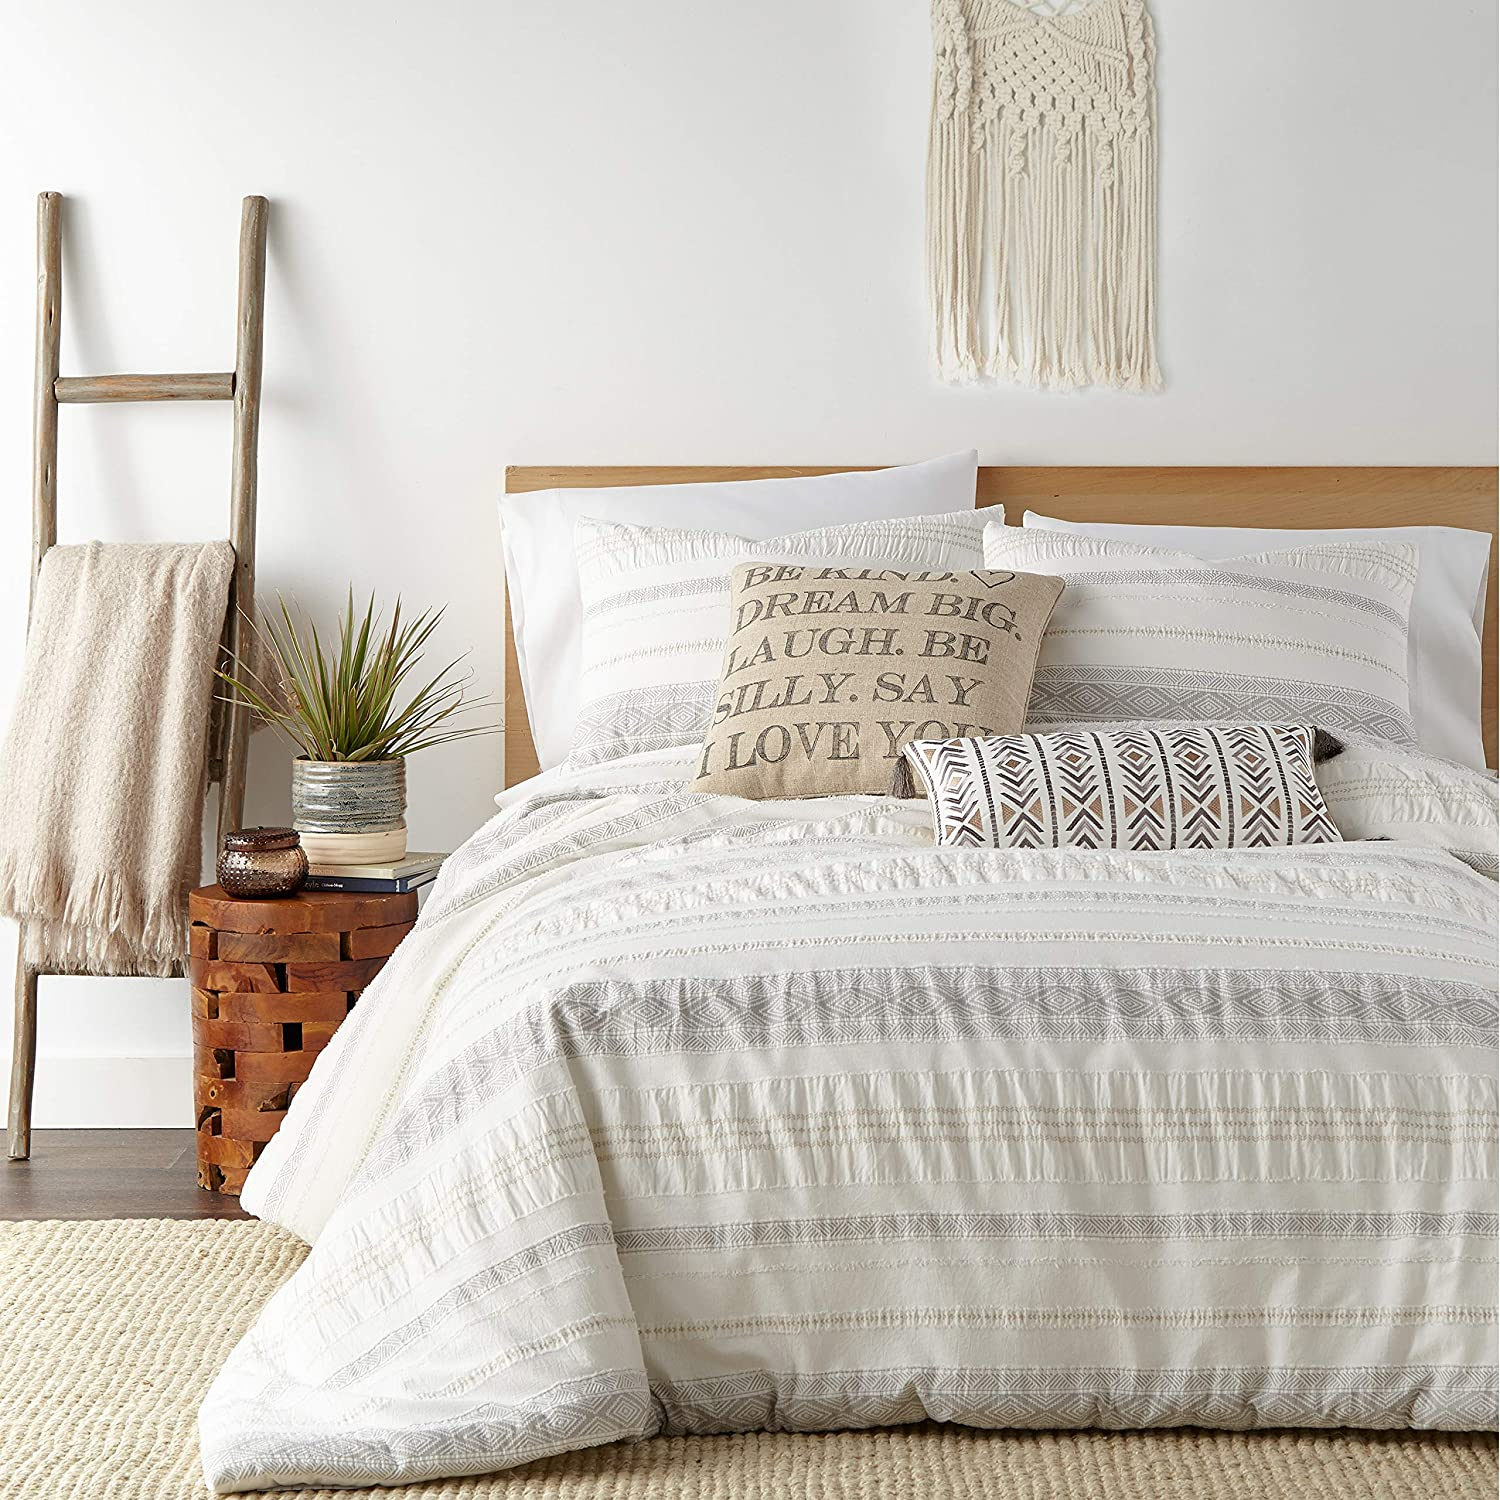 Levtex home - Pickford Duvet Cover Set - Twin Duvet Cover + Two Standard Pillow Cases - Grey, Taupe, Off-White - Jacquard Tribal - Duvet Cover (68 x 88in.) and Pillow Case (26 x 20in.) - Cotton